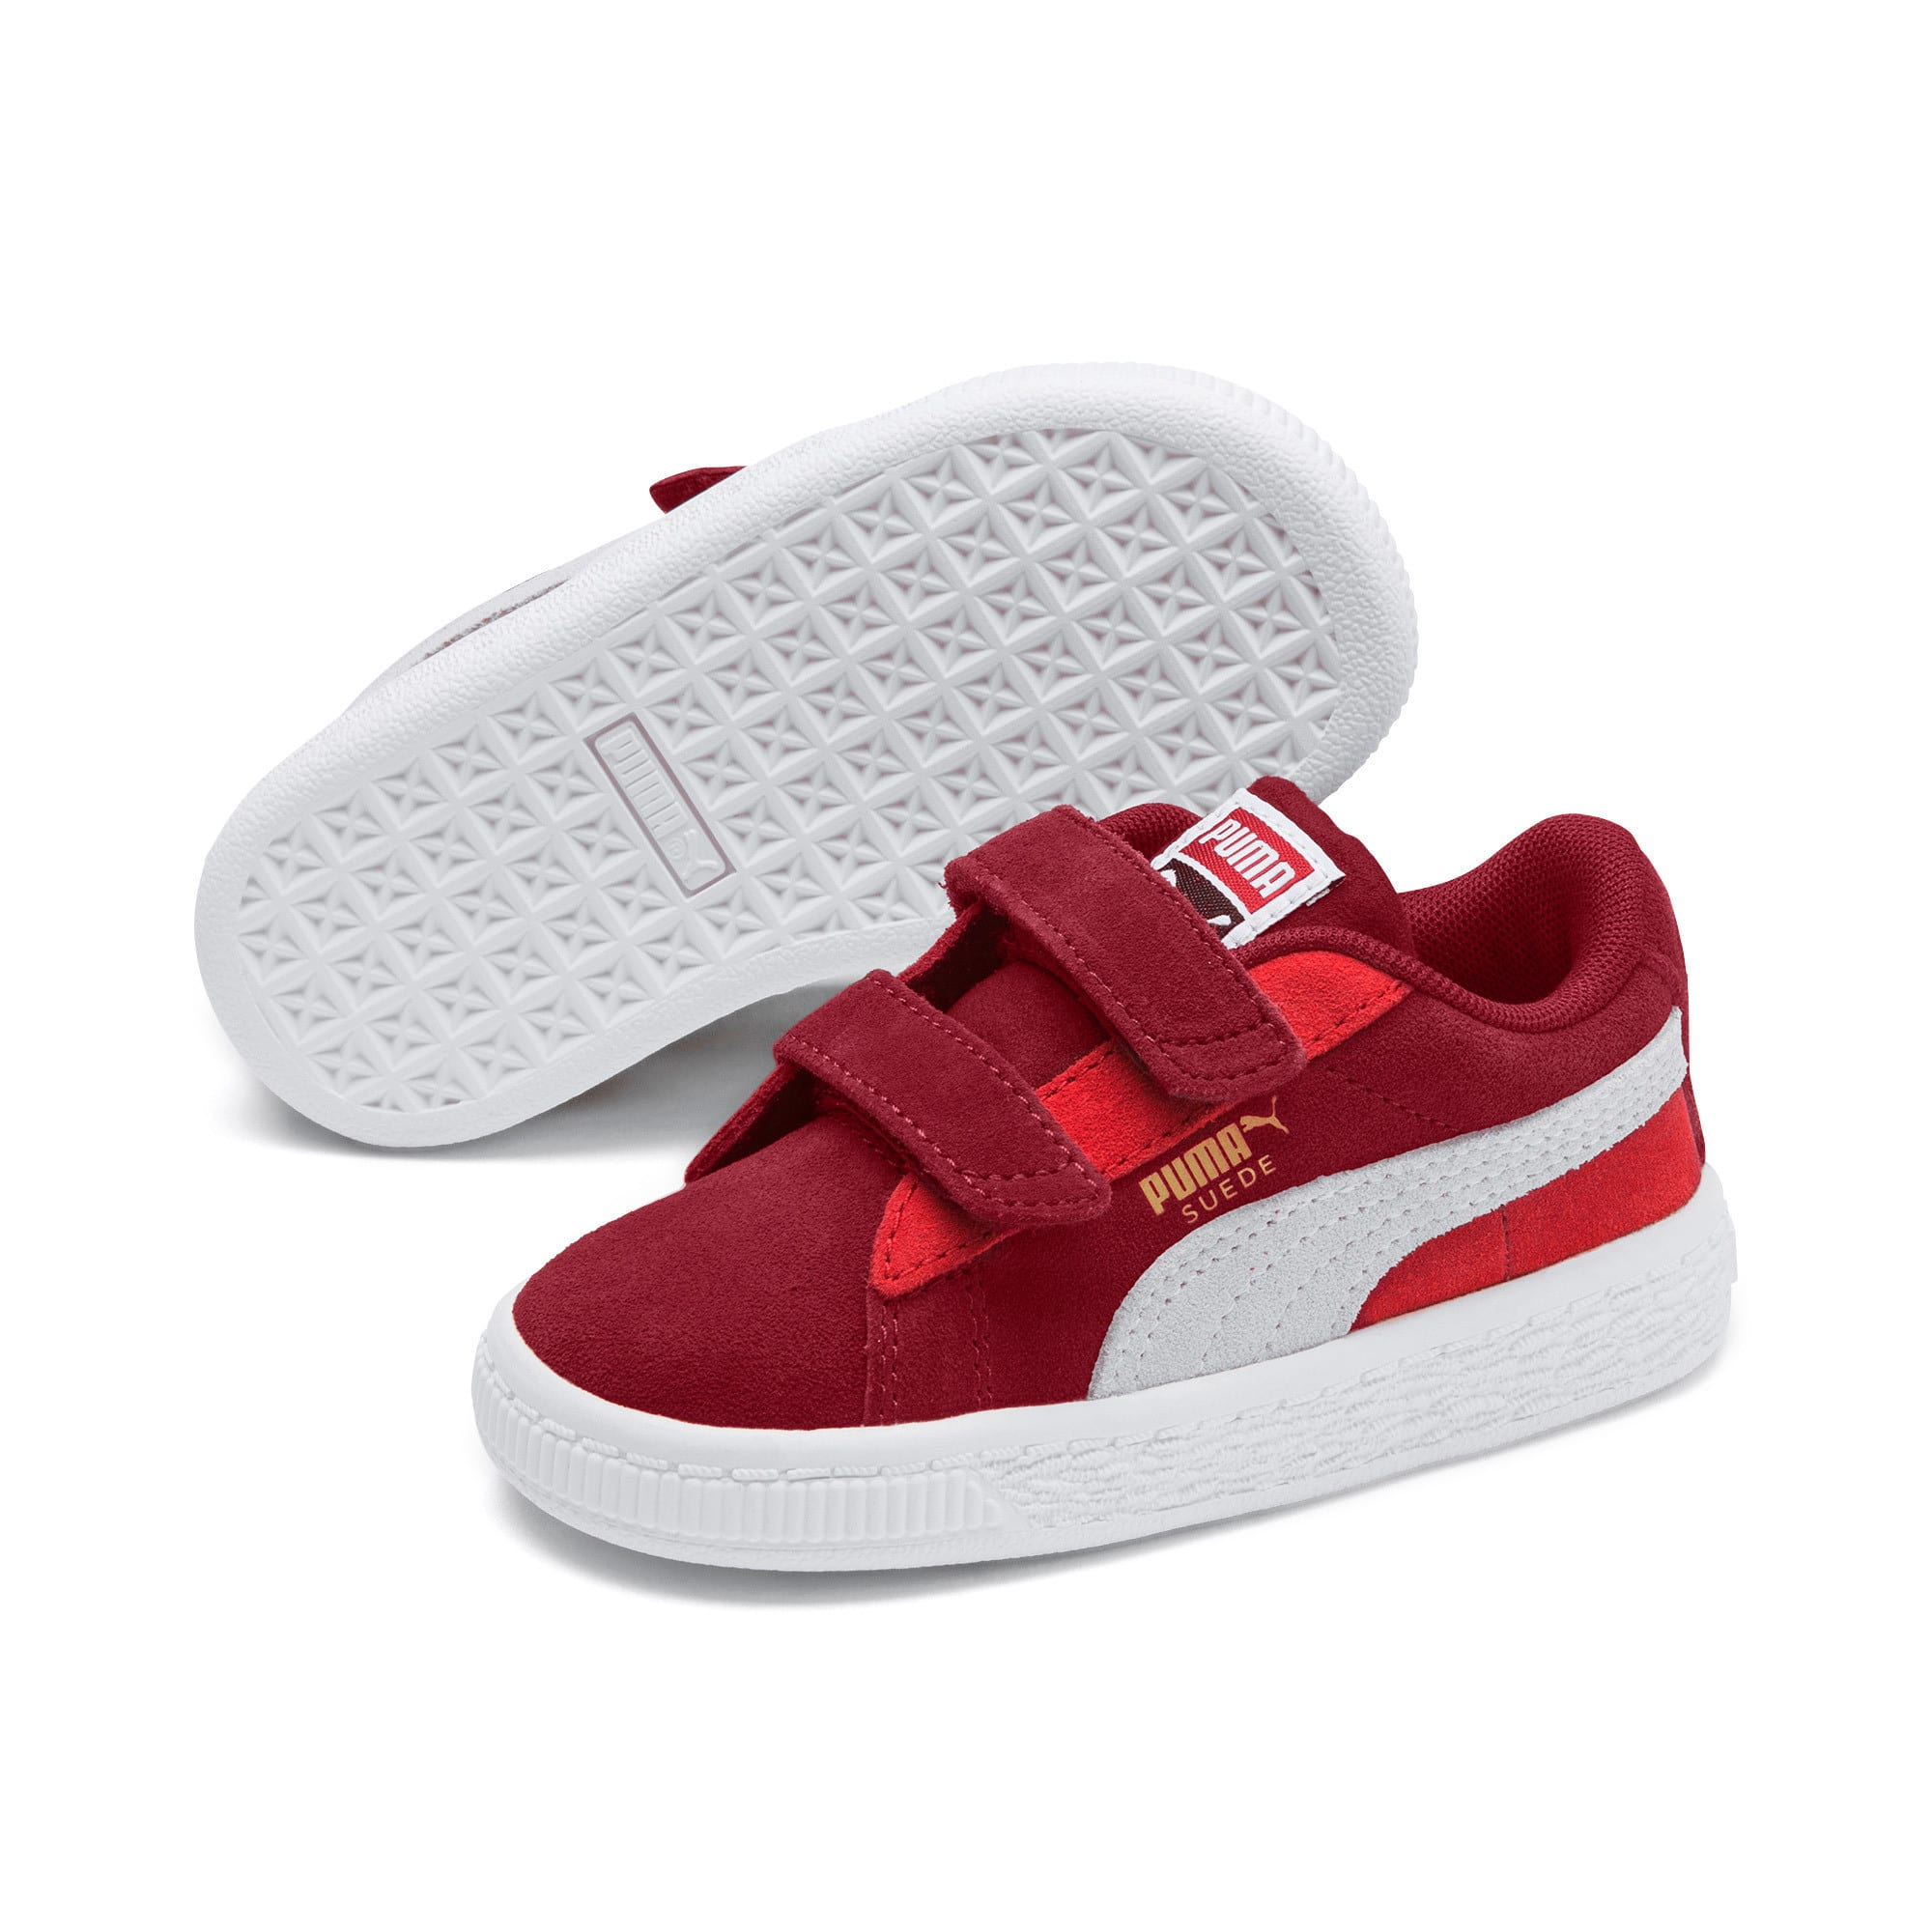 Thumbnail 1 of Suede Classic Toddler Shoes, Rhubarb-Puma W-High Risk Red, medium